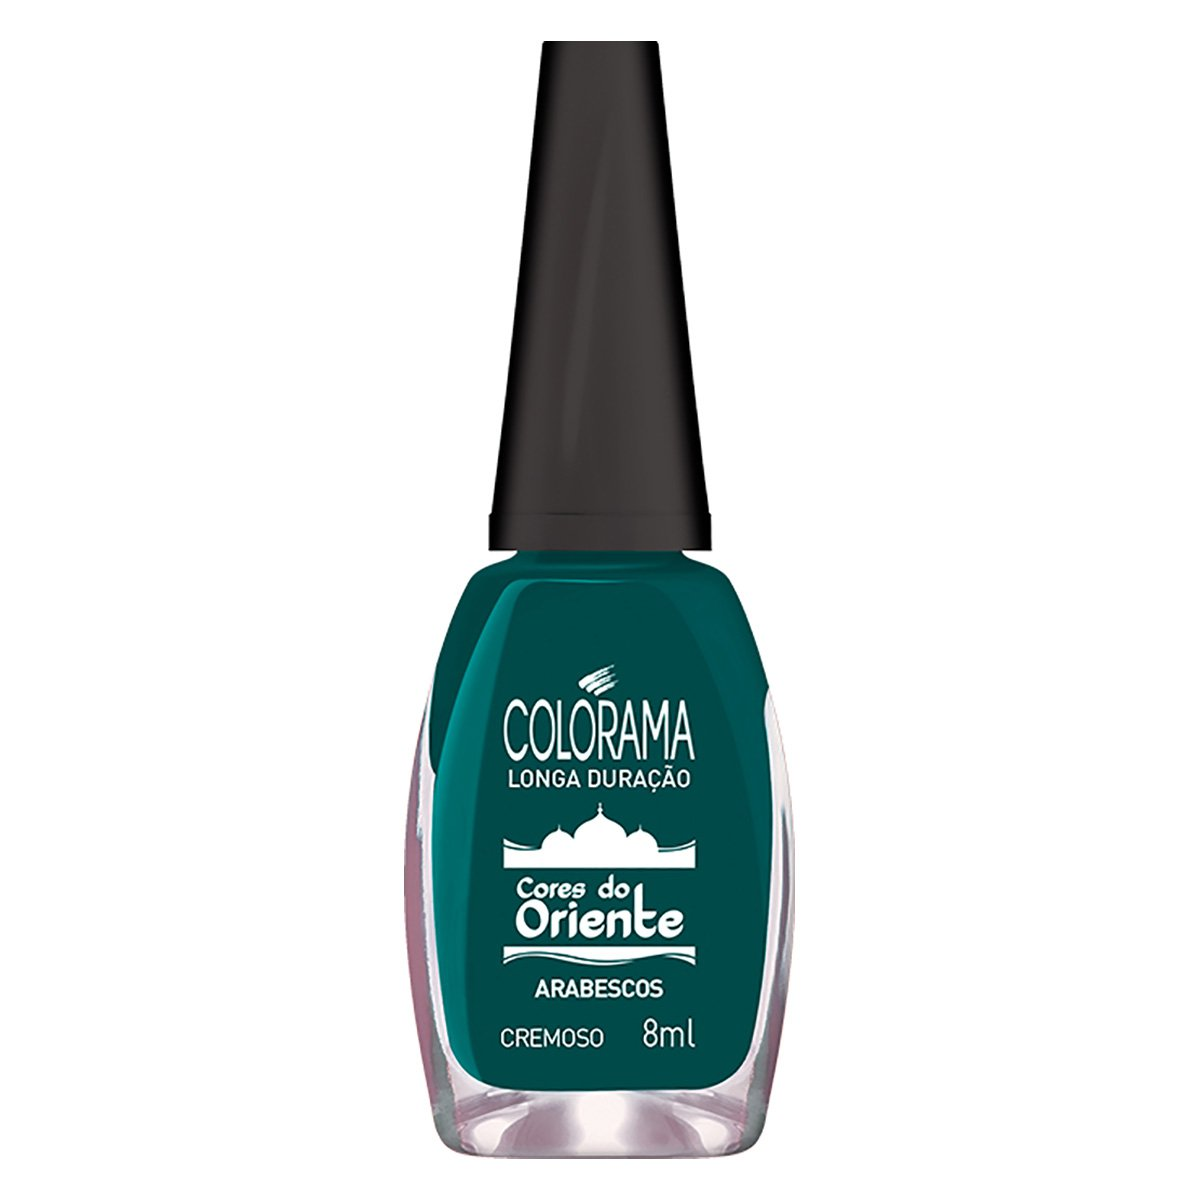 Esmalte Cremoso Colorama Cores do Oriente - Arabesco 8ml